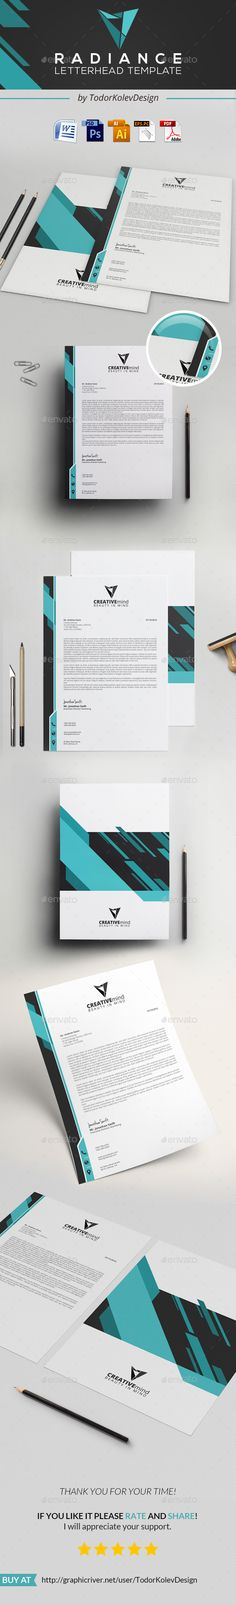 Radiance Letterhead  — PSD Template #a4 #professional • Download ➝ https://graphicriver.net/item/radiance-letterhead/18293932?ref=pxcr